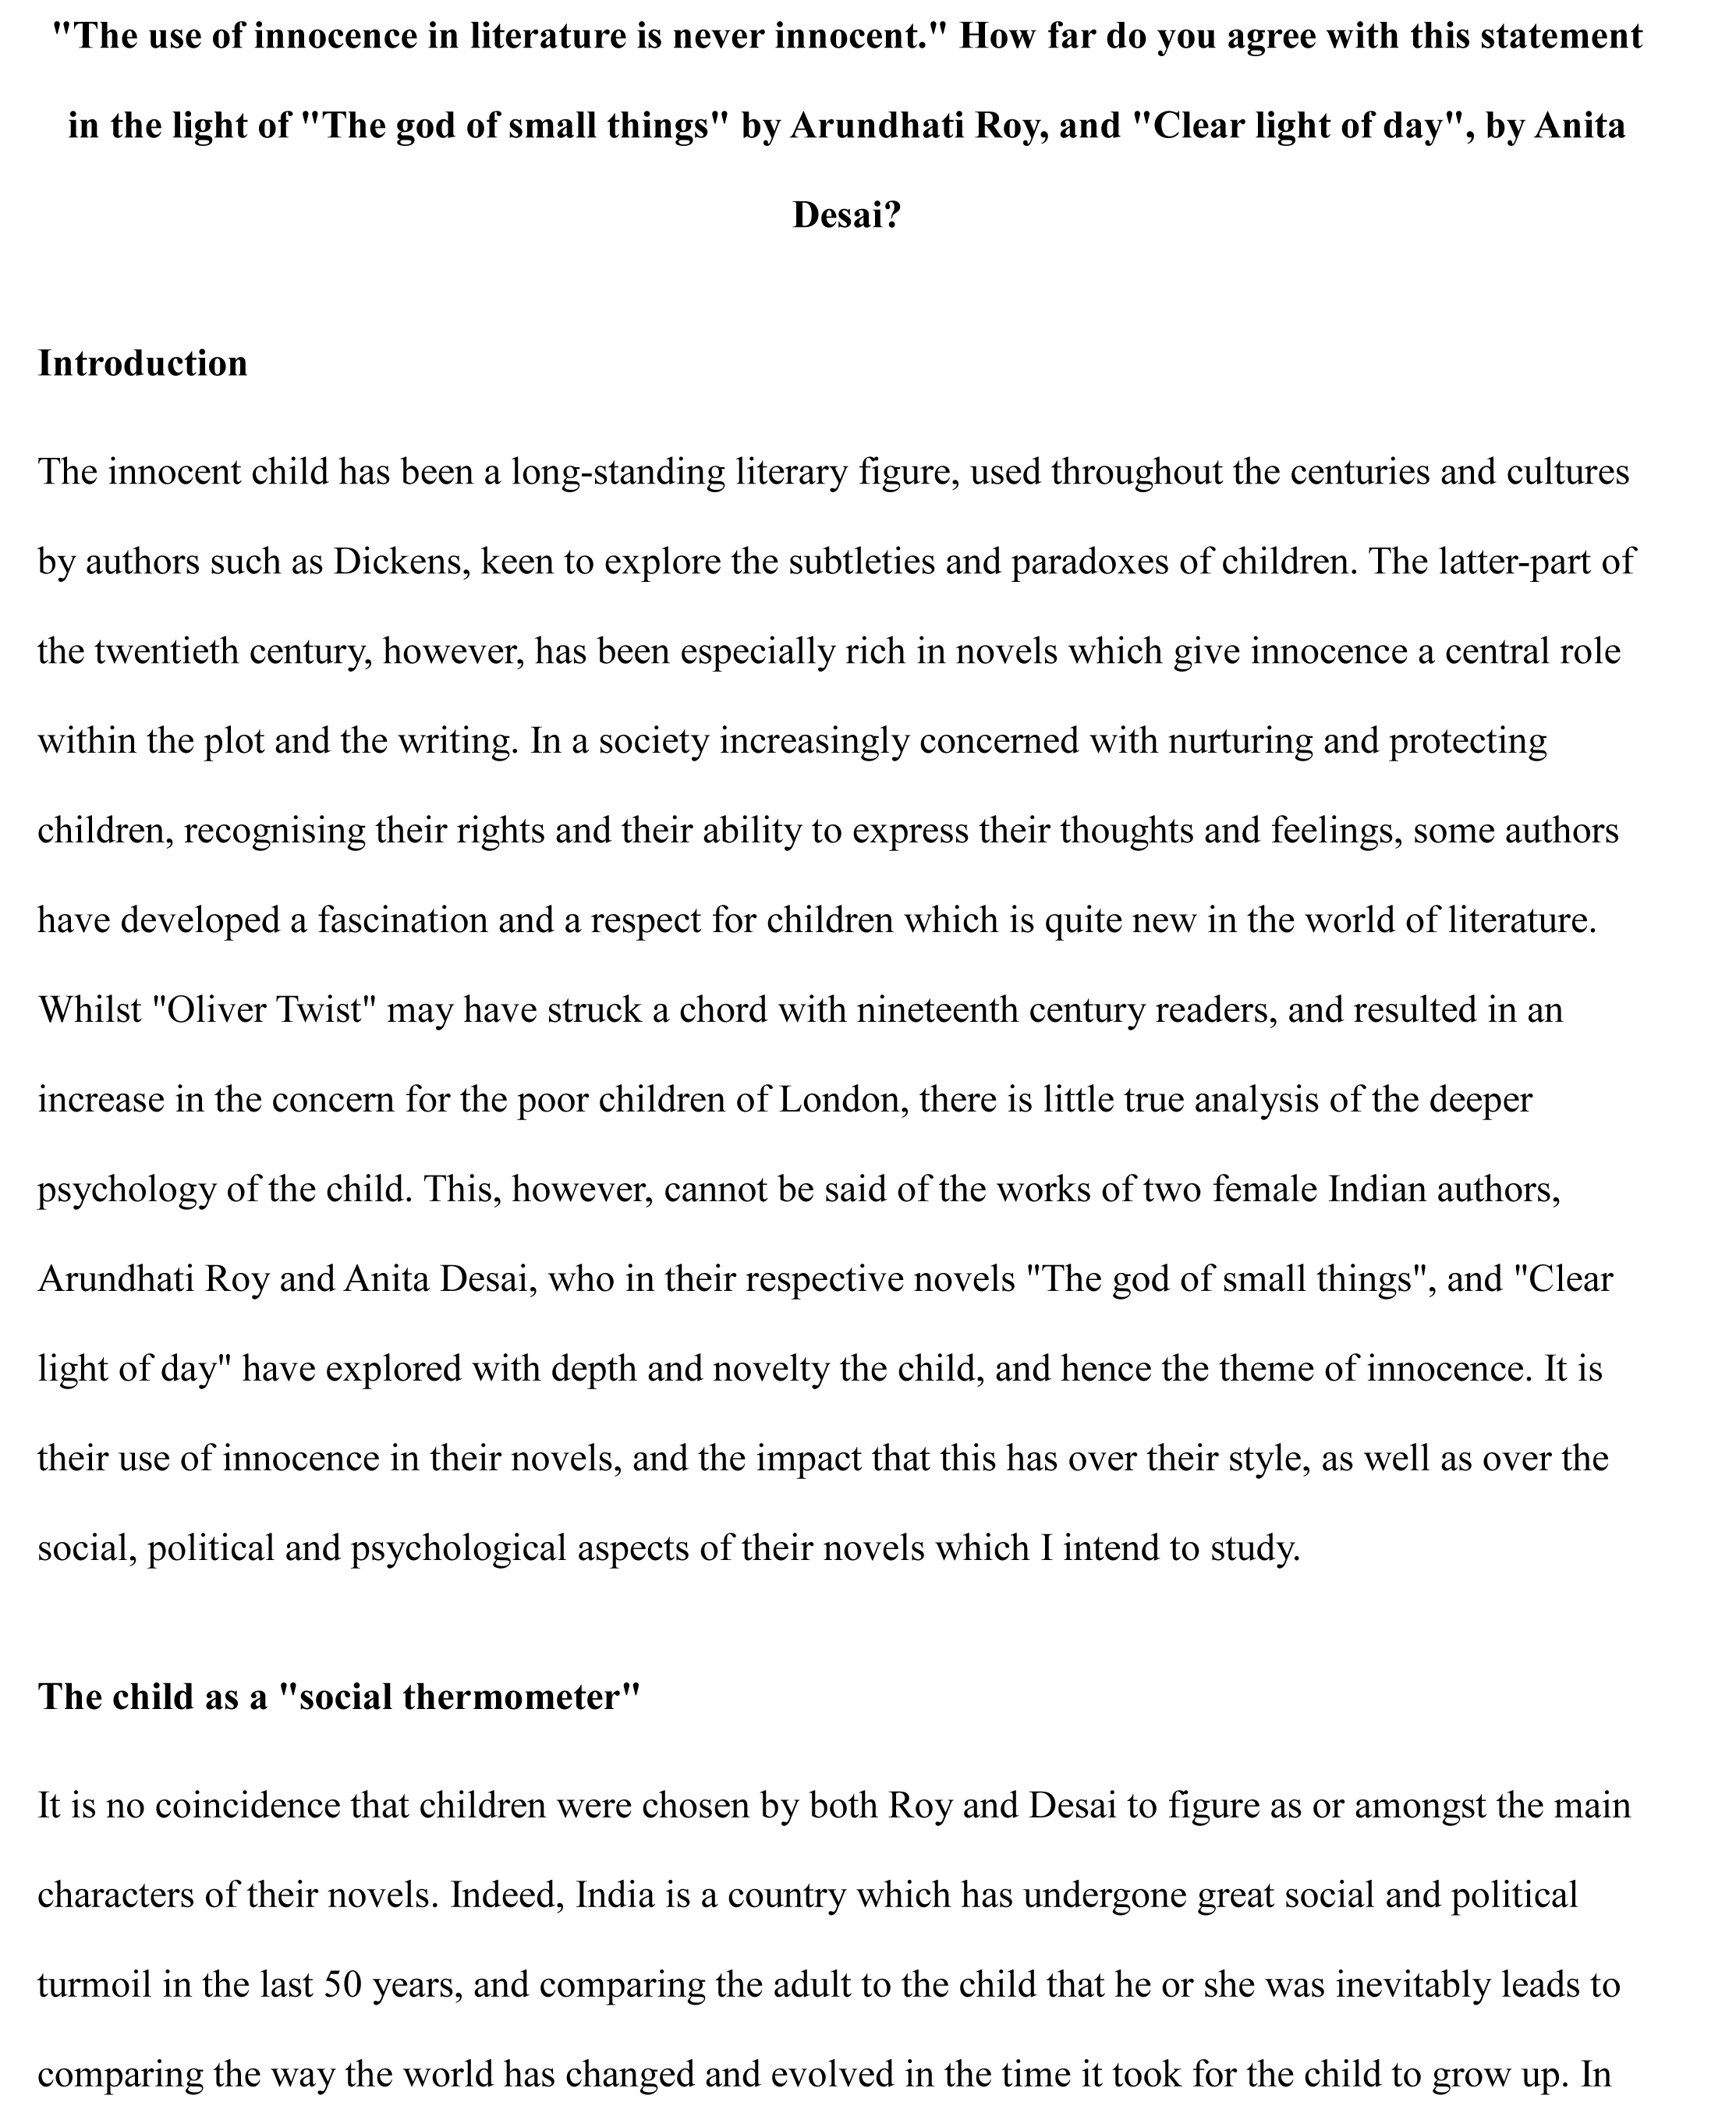 003 Alevel Course Work Sample Essay Example Stirring Literary 4th Grade Analysis Full